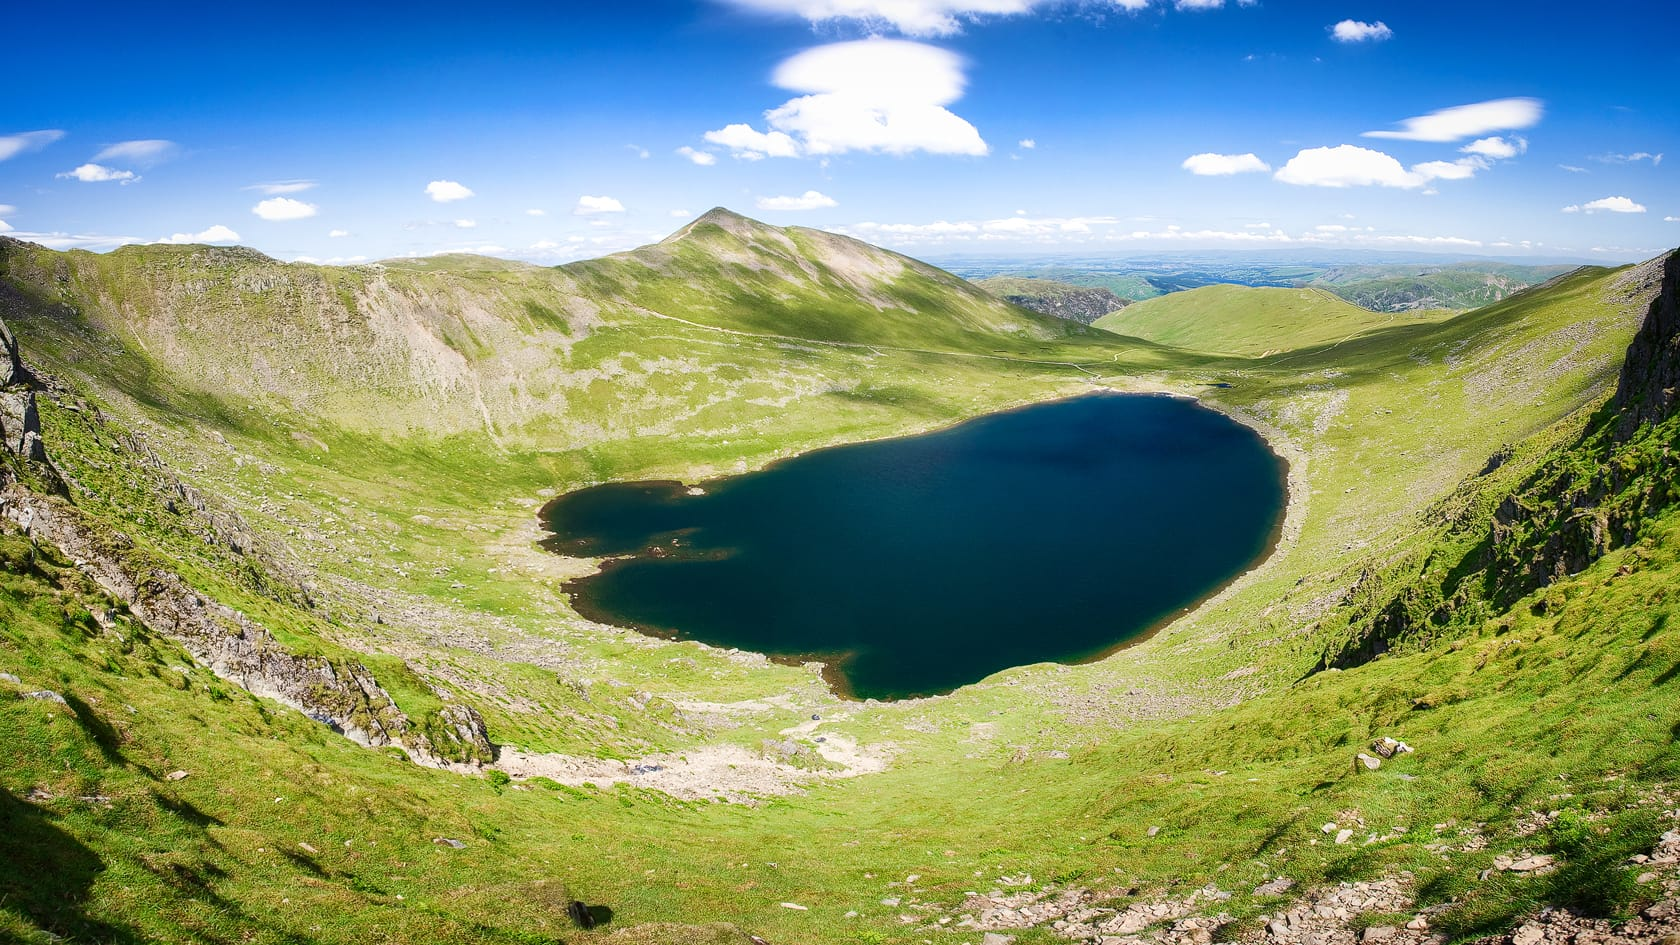 Red Tarn, just below the summit of Helvellyn on a fine summer's day. Photo by DAVID ILIFF. License: CC BY-SA 3.0